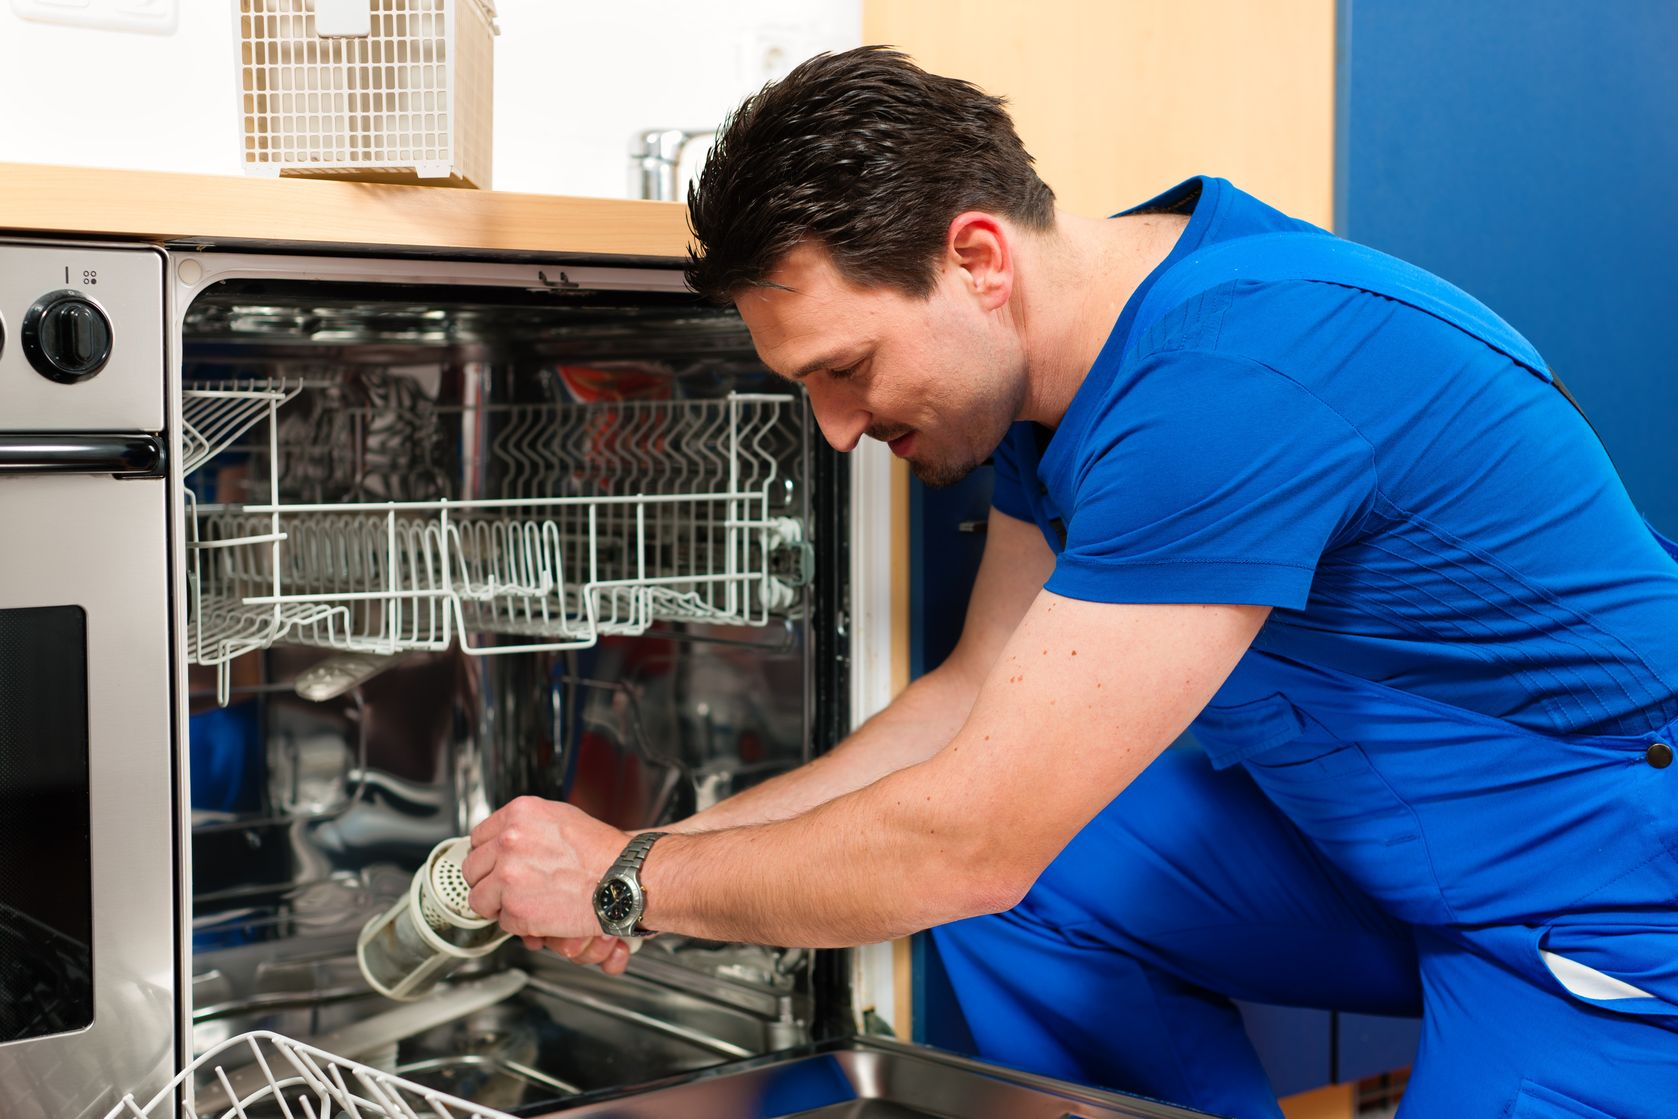 10269956 - technician or plumber repairing the dishwasher in a household